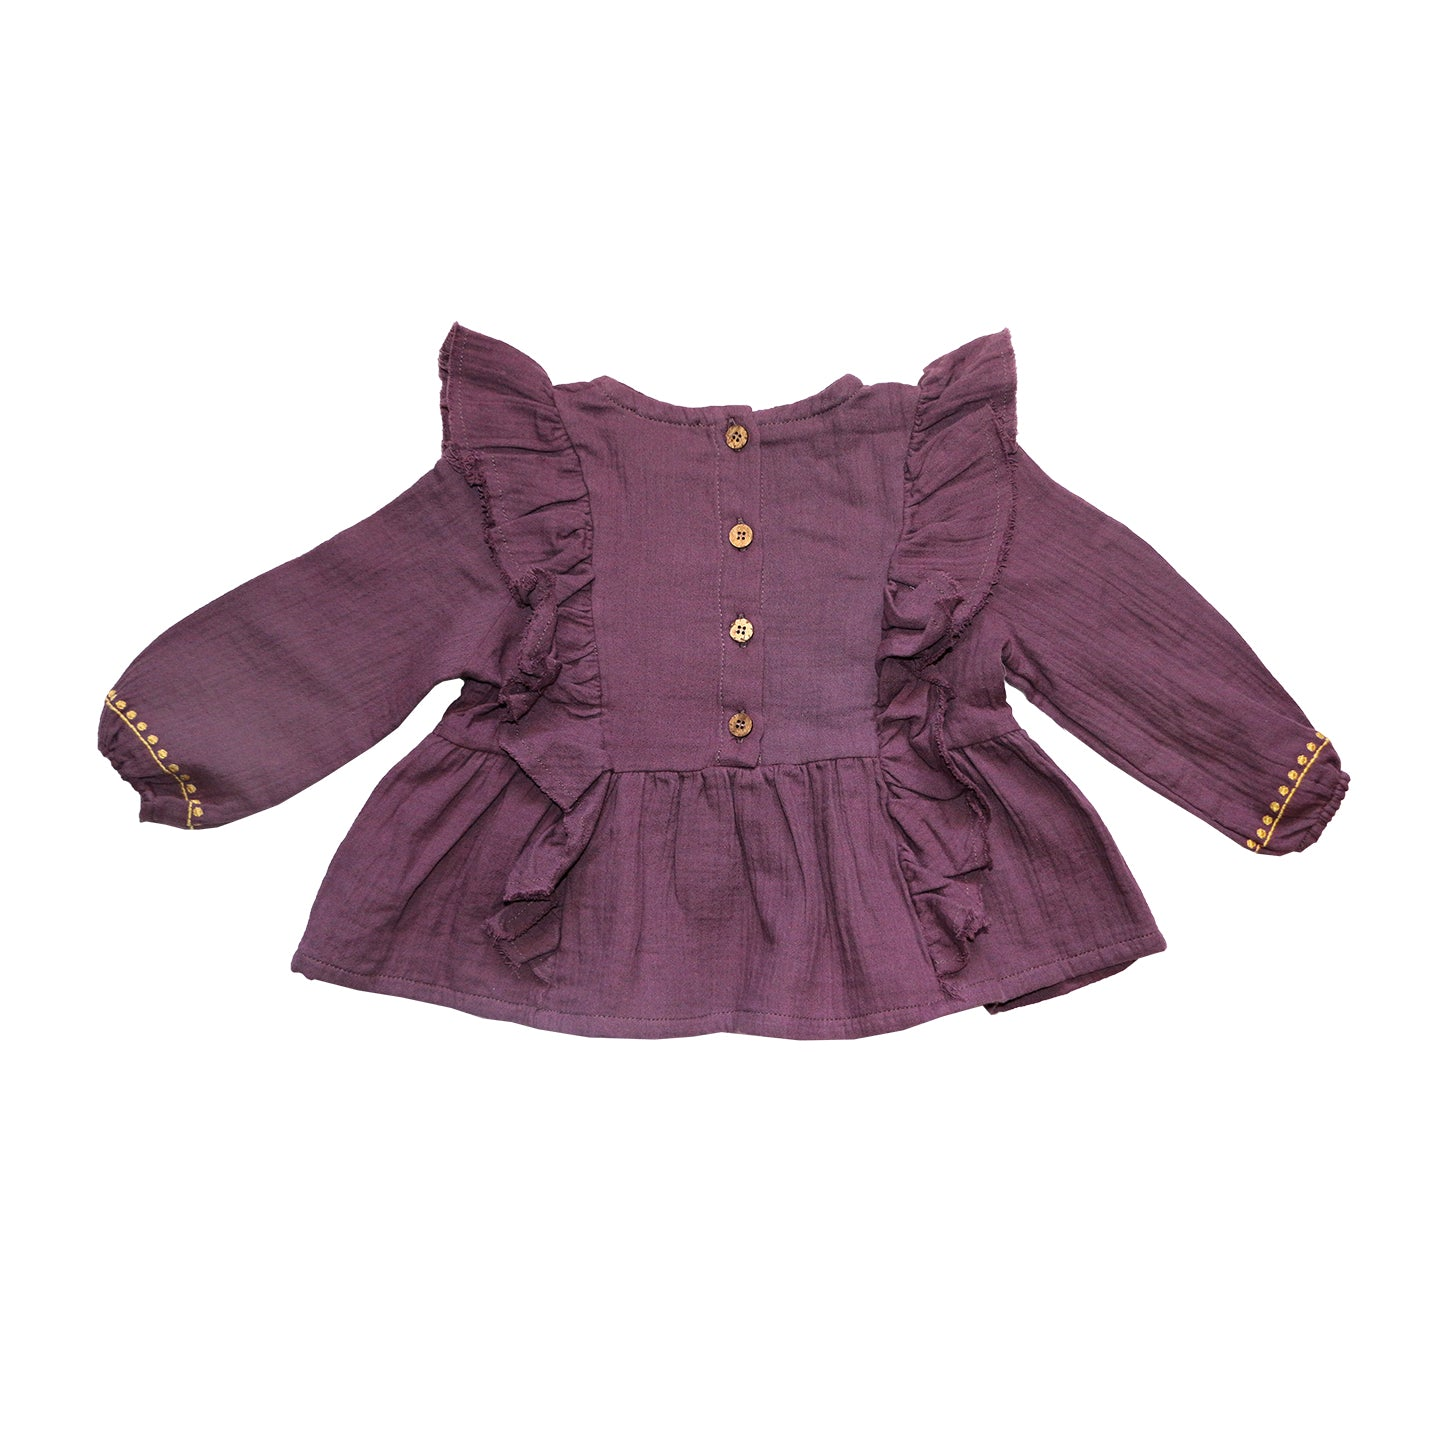 Load image into Gallery viewer, Coco Au Lait BURGUNDY EMROIDERED BLOUSE Blouse Prune Purple